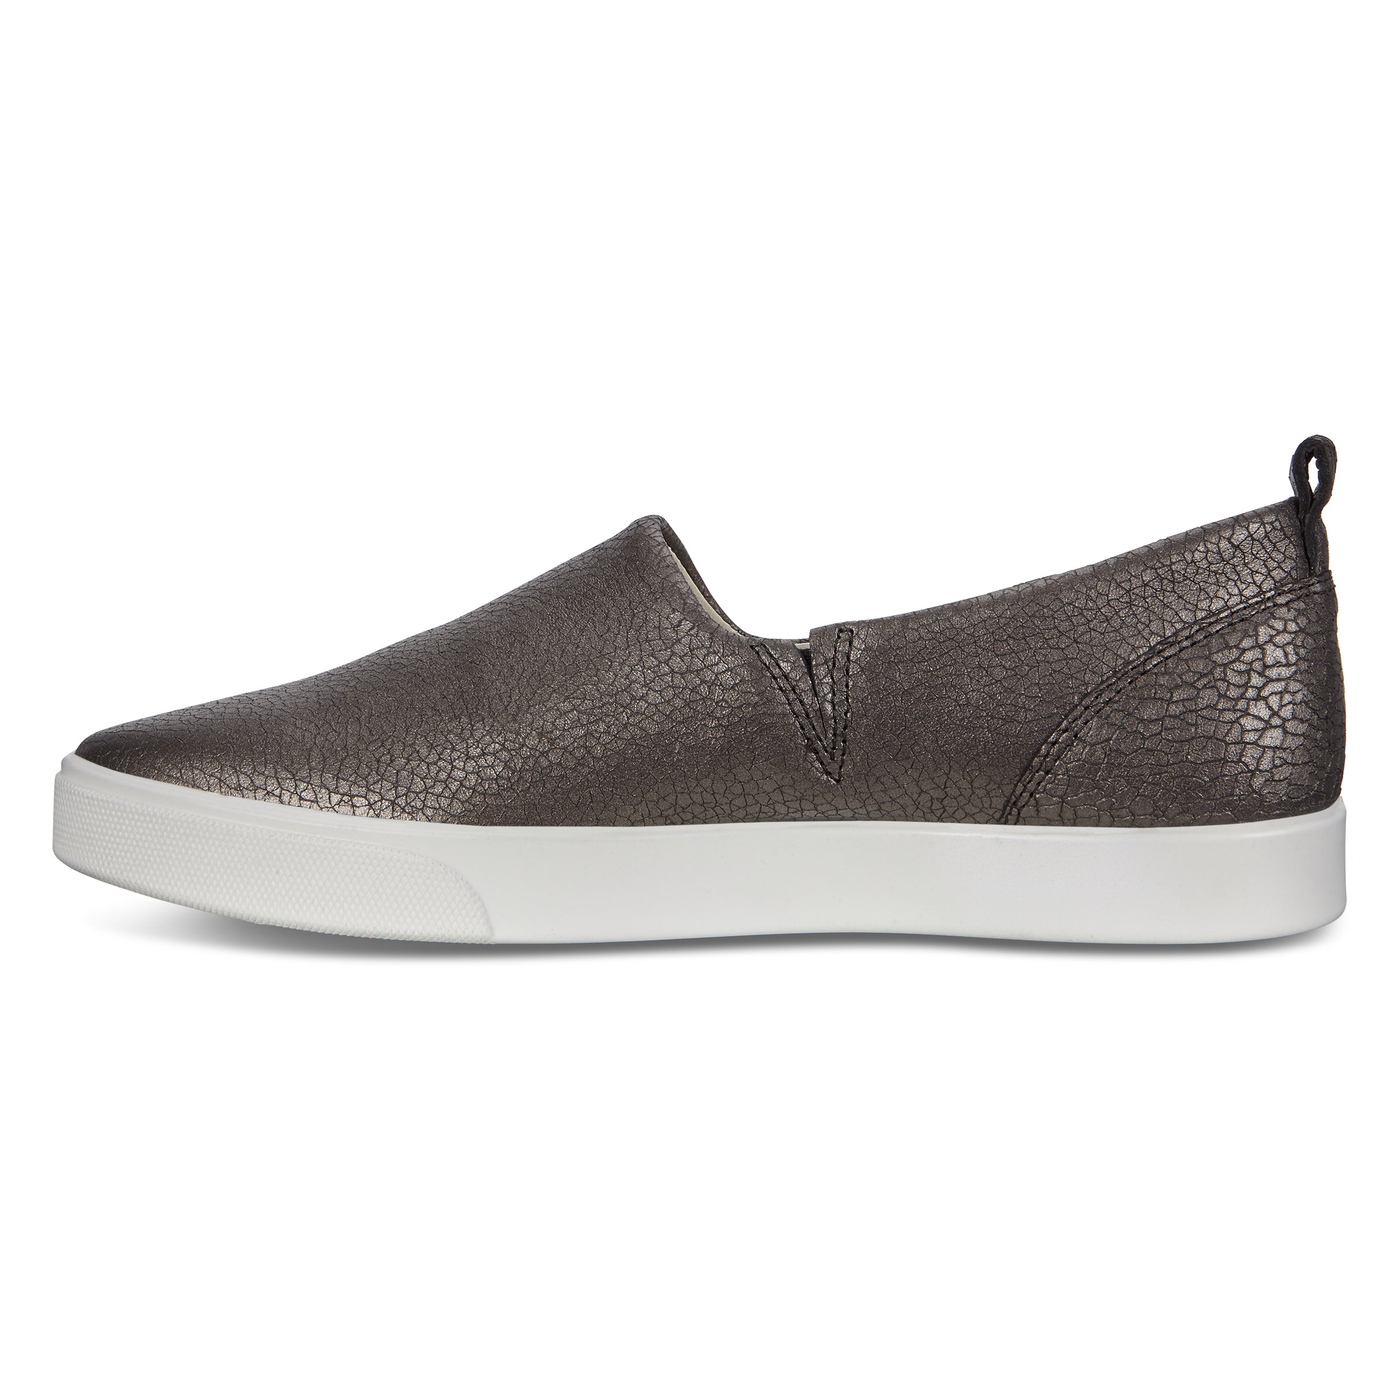 ECCO GILLIAN Cracked-Leather Sneaker Slip-On